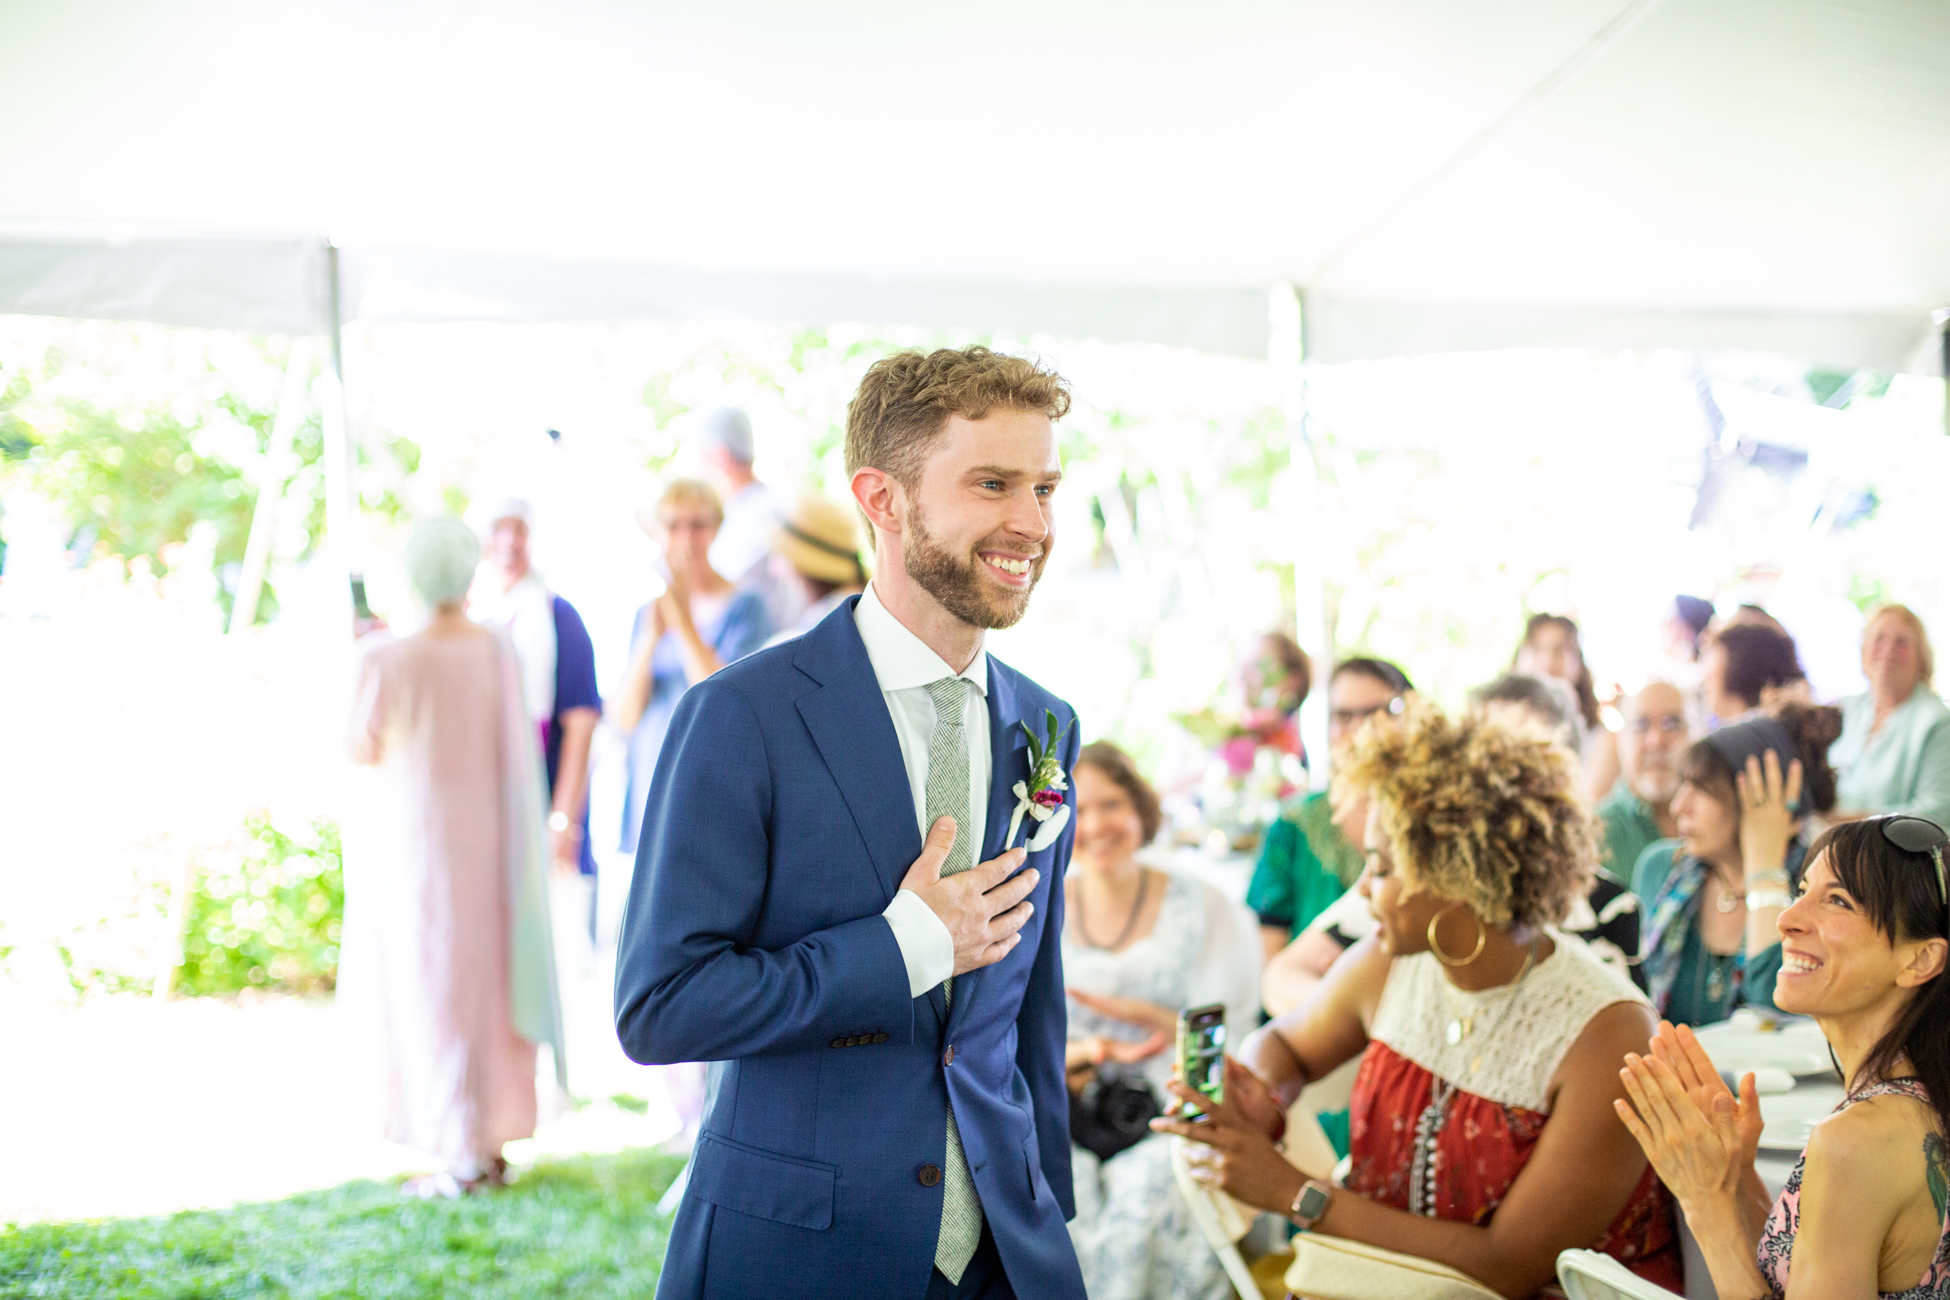 MaryFatimah and Noah's Summer Wedding at Bawa Muhaiyaddeen Fellowship Farm by Avi Loren Fox LLC-14.jpg